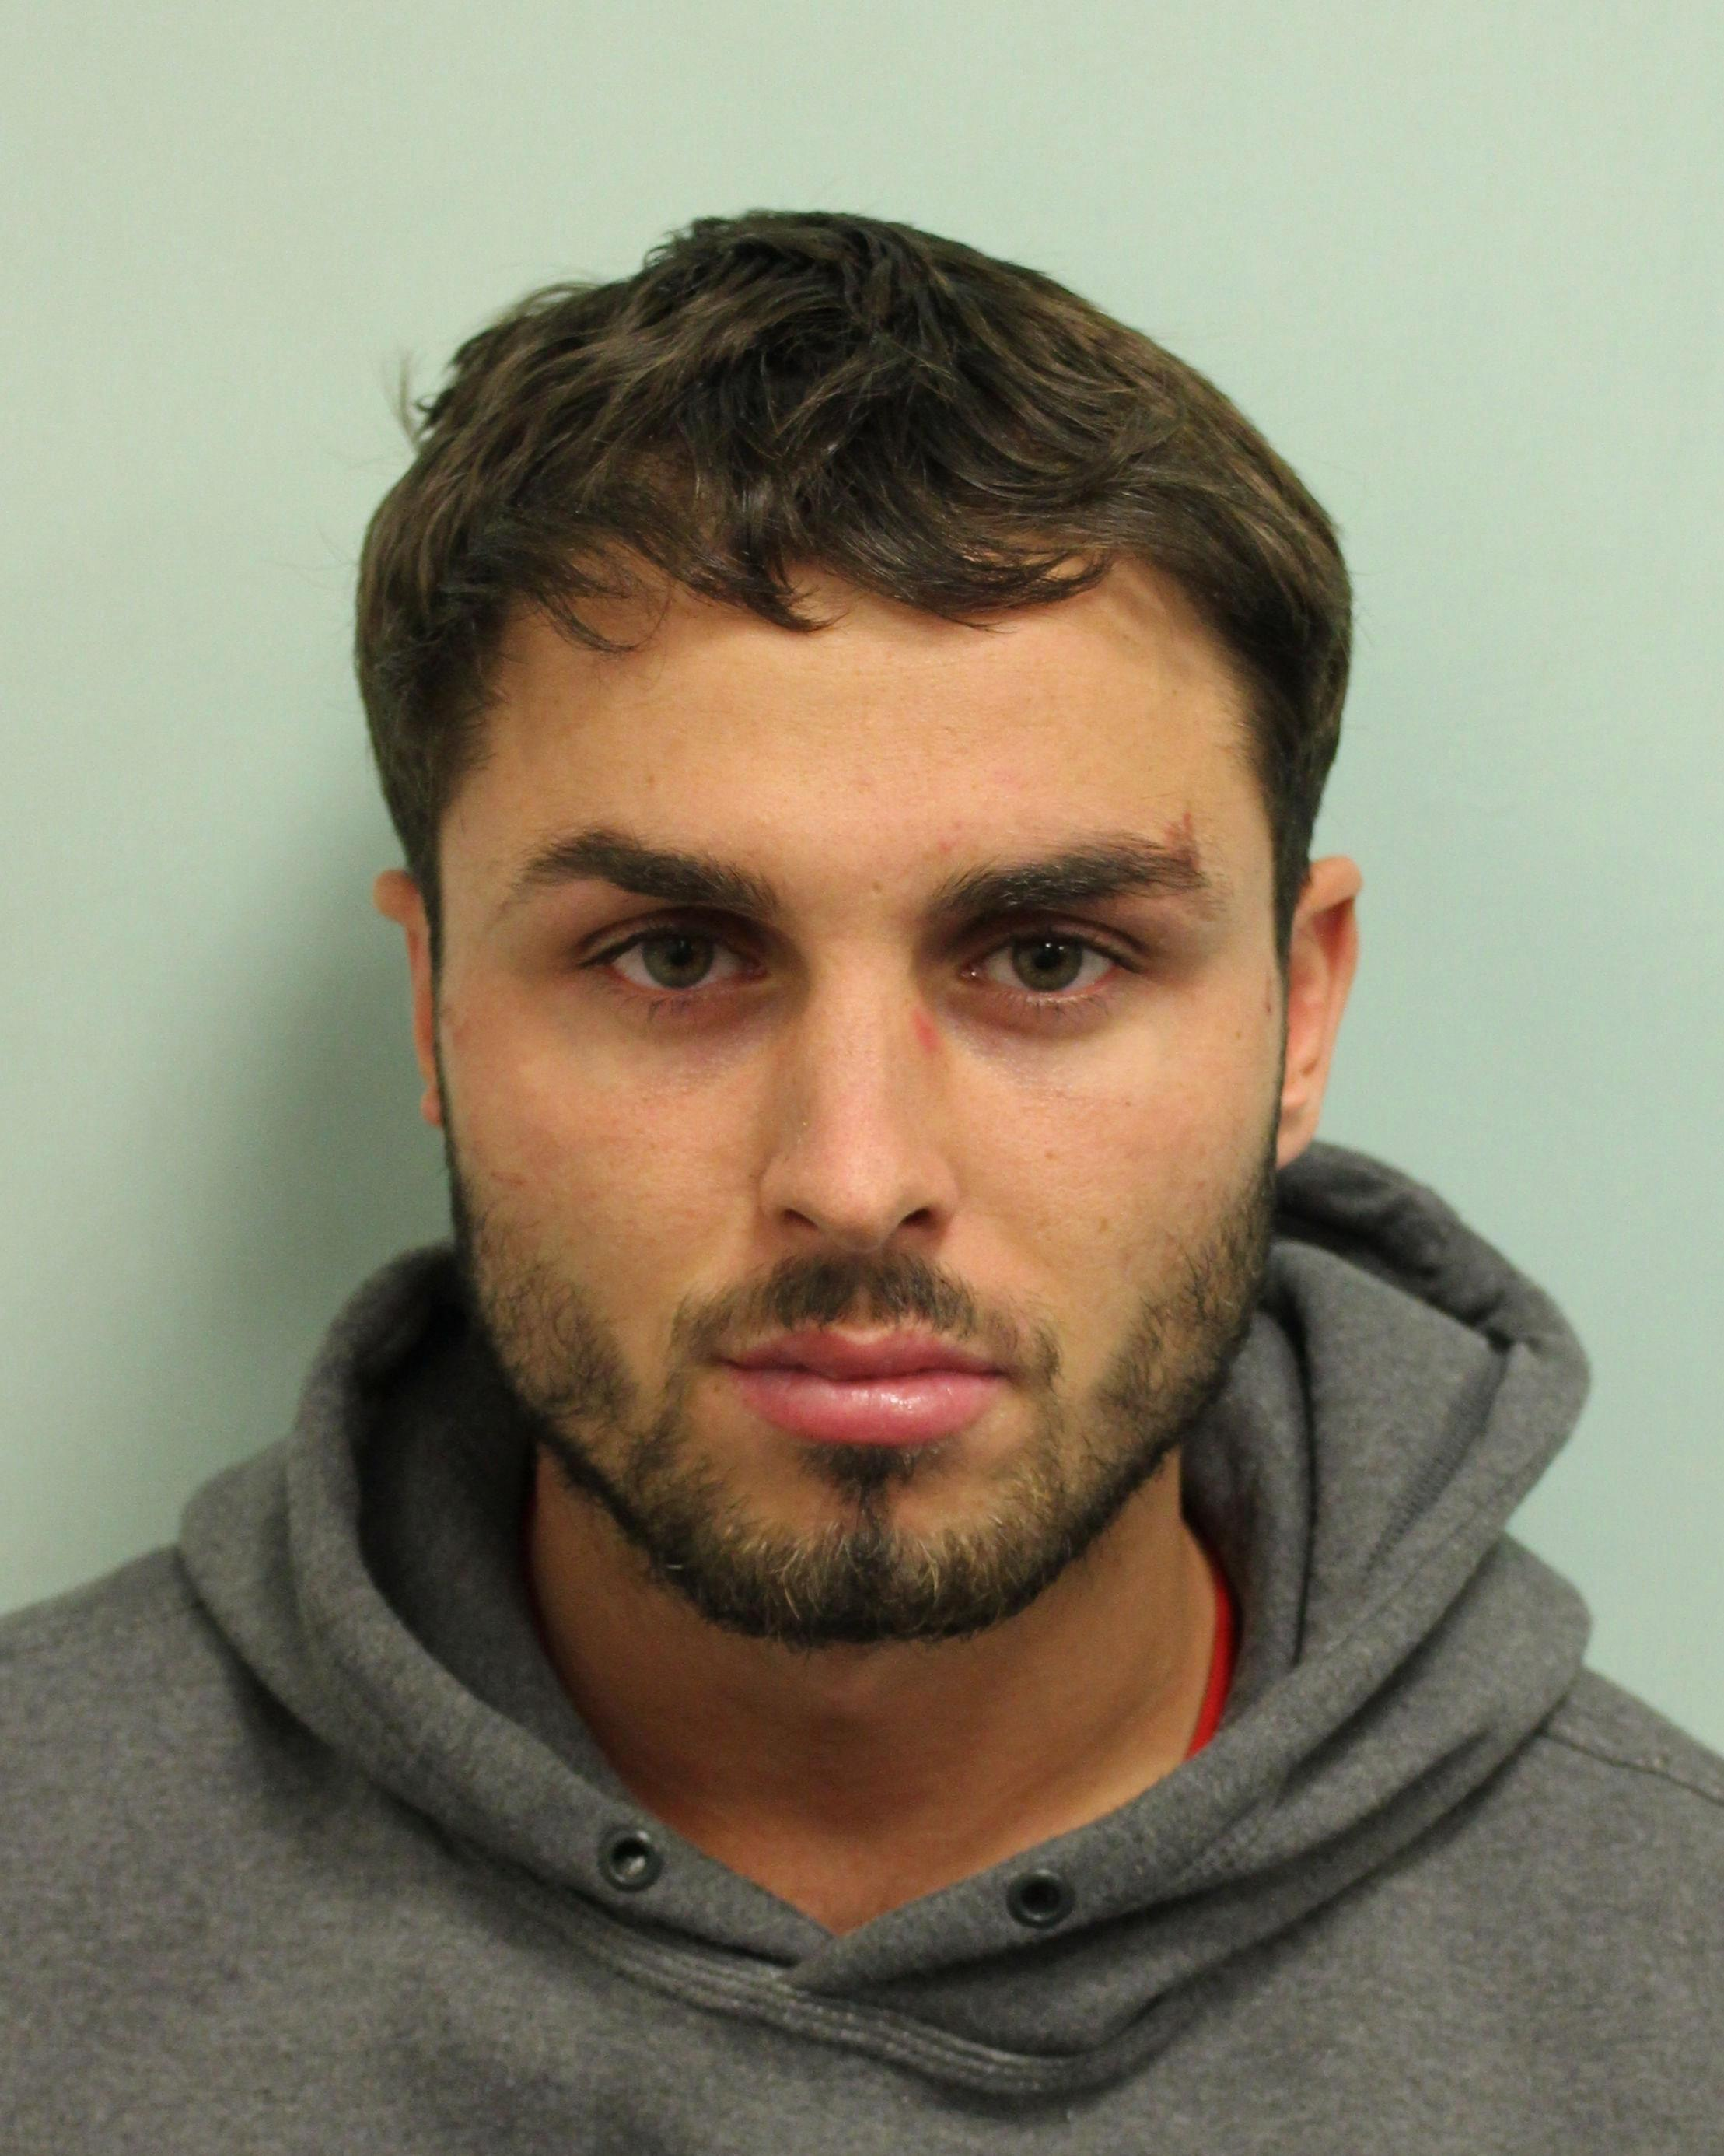 Arthur Collins prison snaps are an insult to the 16 victims of his sick acid attack